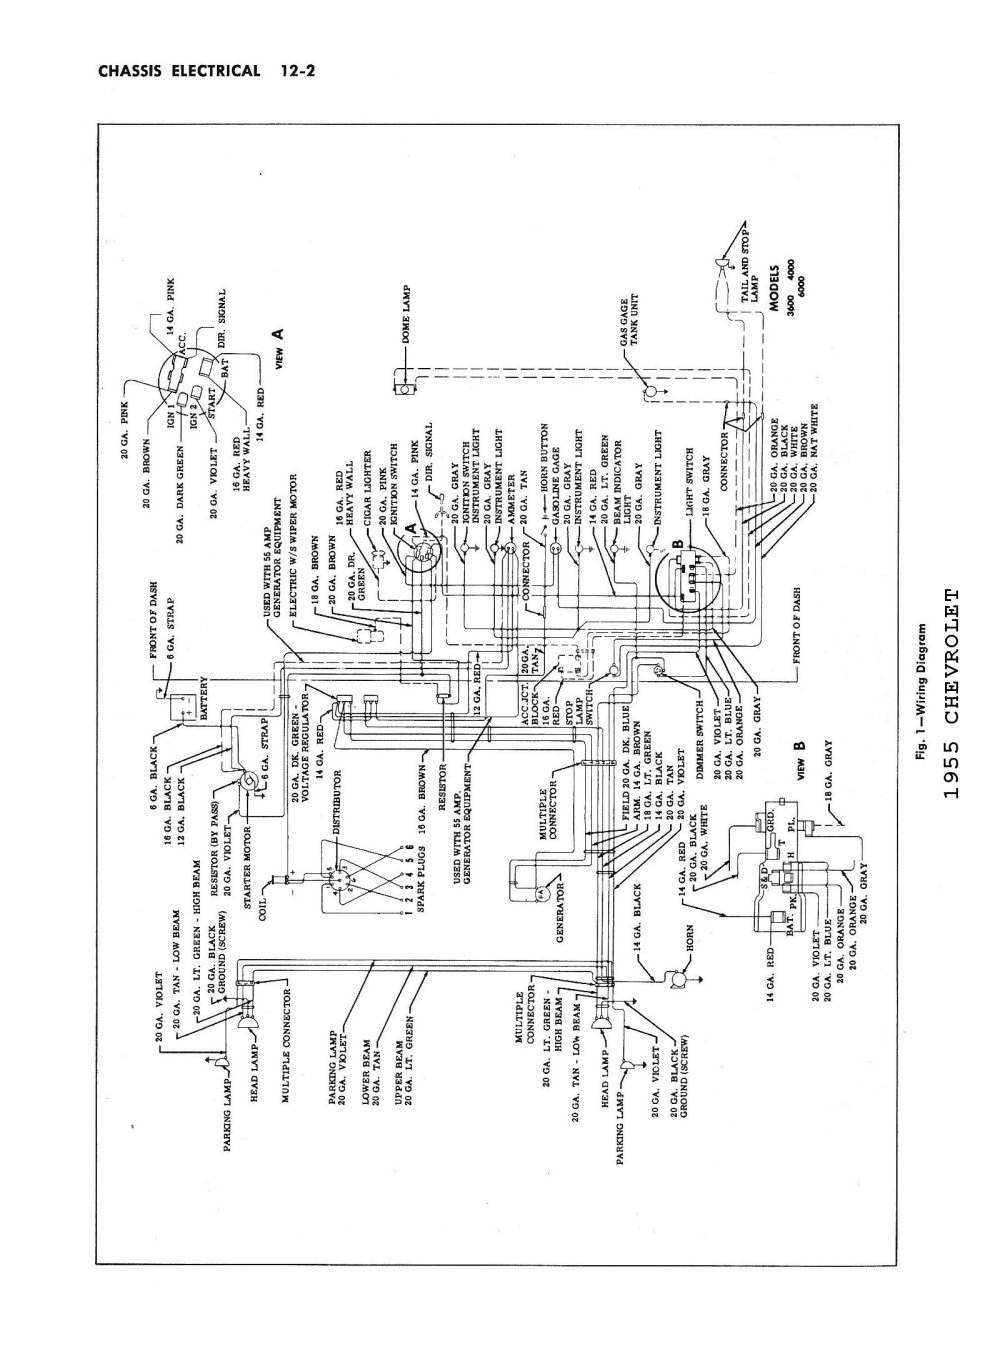 medium resolution of 1959 chevy wiring diagram wiring diagram third levelwiring diagram for 1959 chevy pickup wiring diagram todays